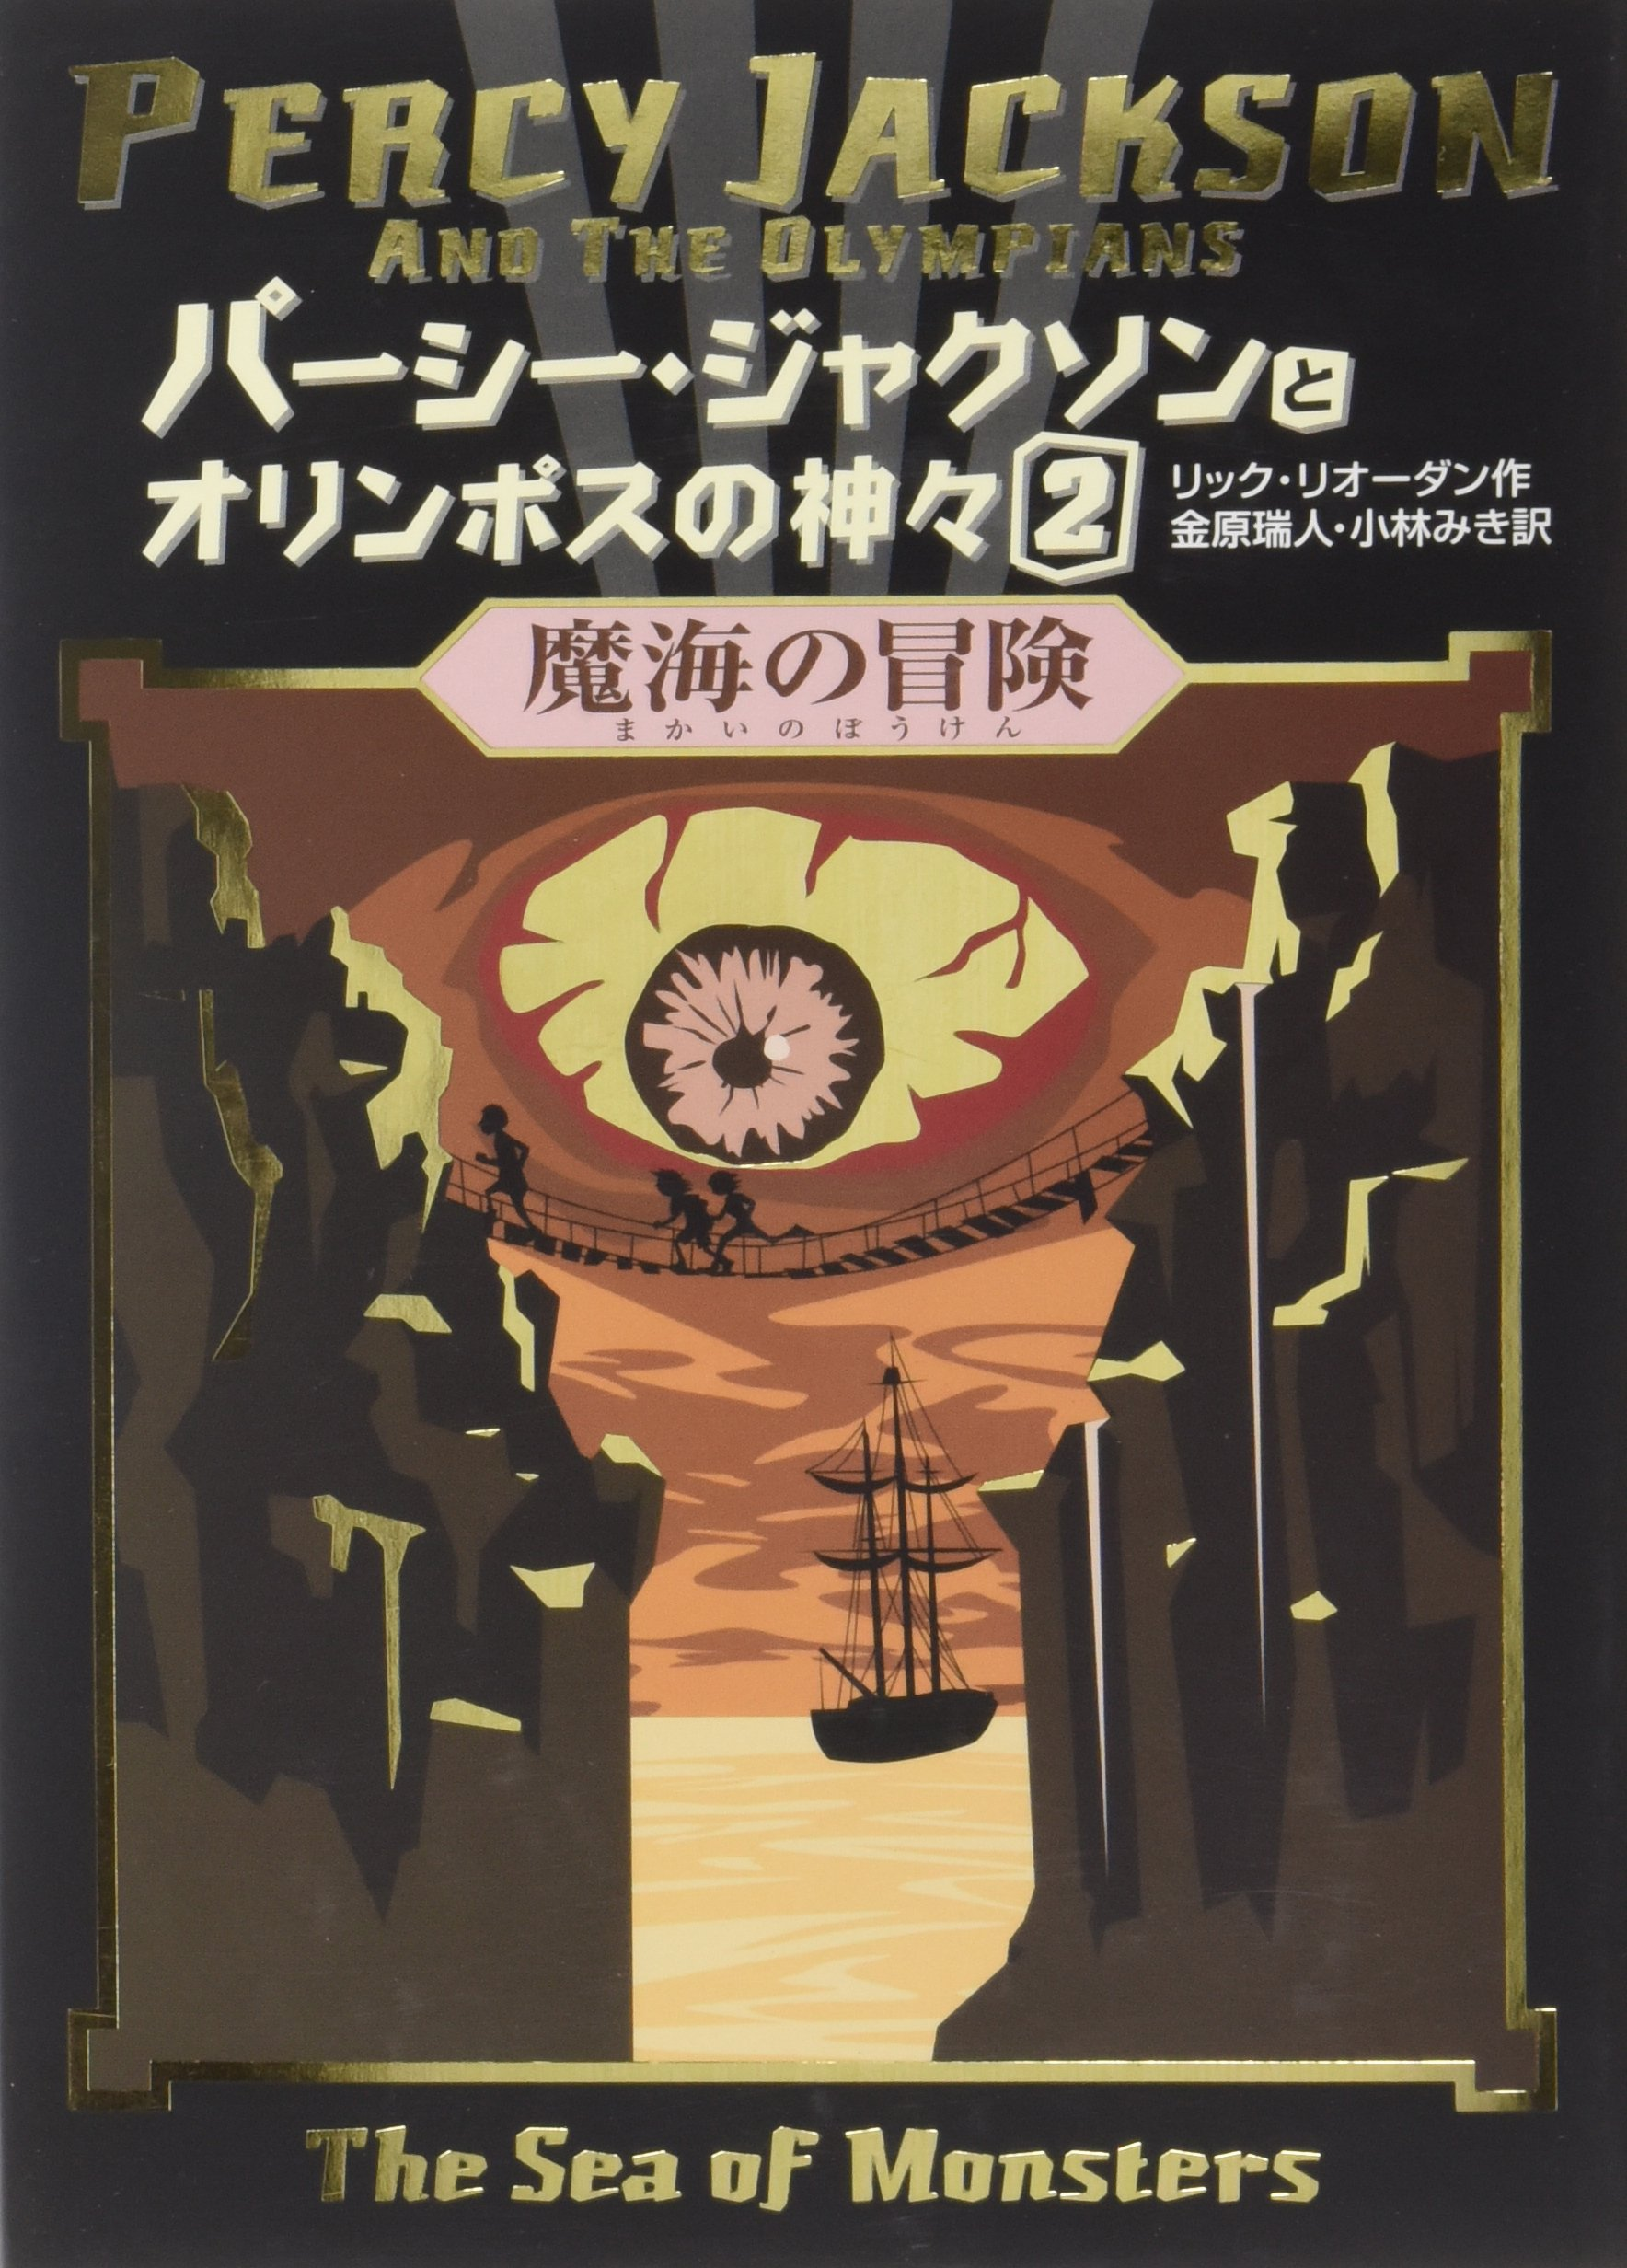 Percy Jackson and the Olympians 2: The Sea of Monsters (Japanese Edition) pdf